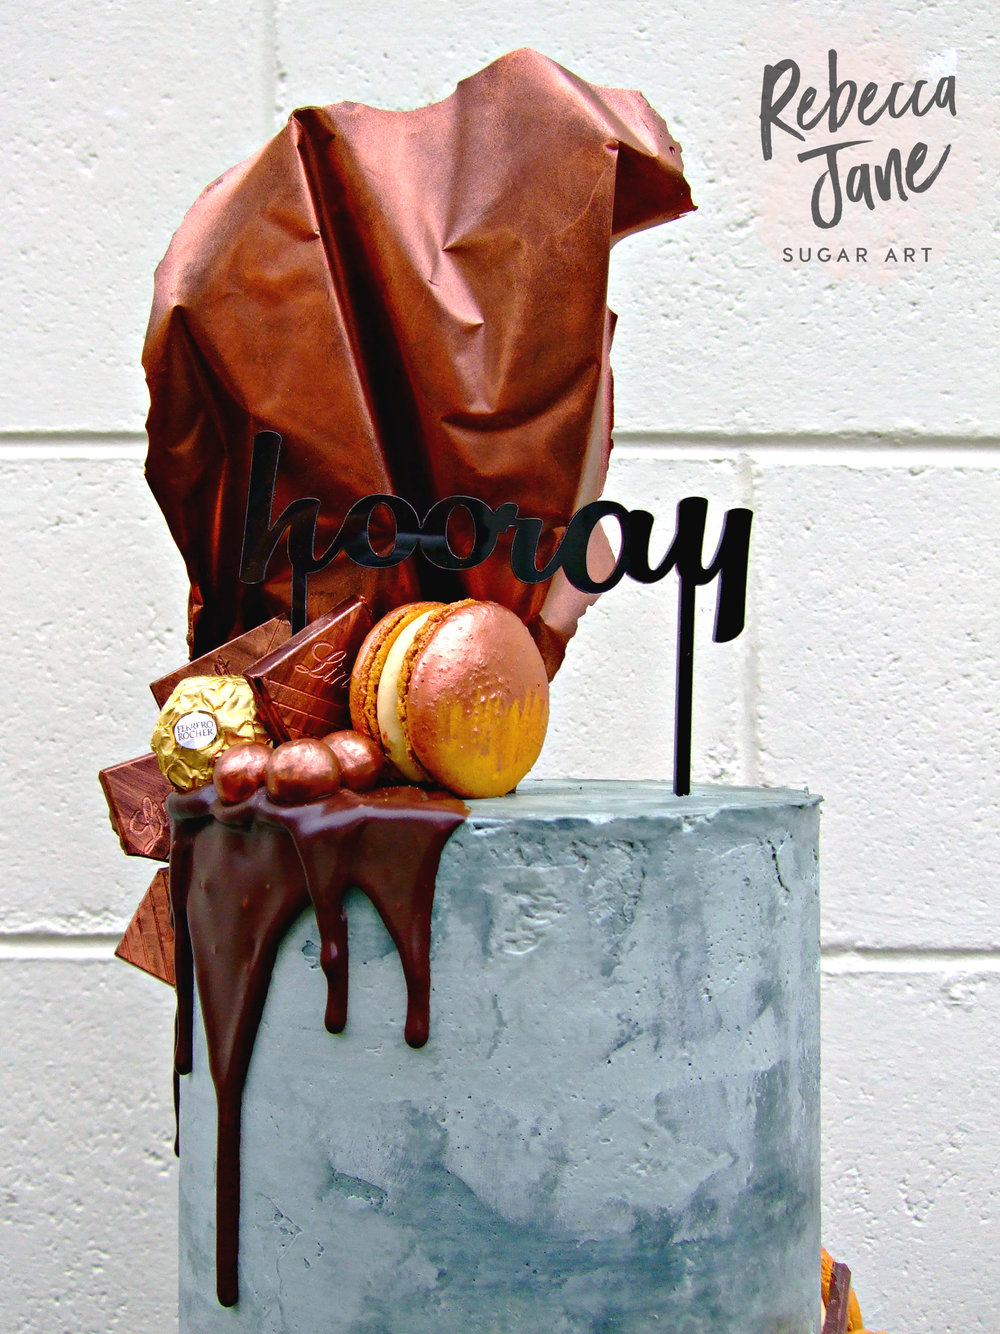 Rebecca Jane Sugar Art - Concrete buttercream drip cake with copper chocolate sail